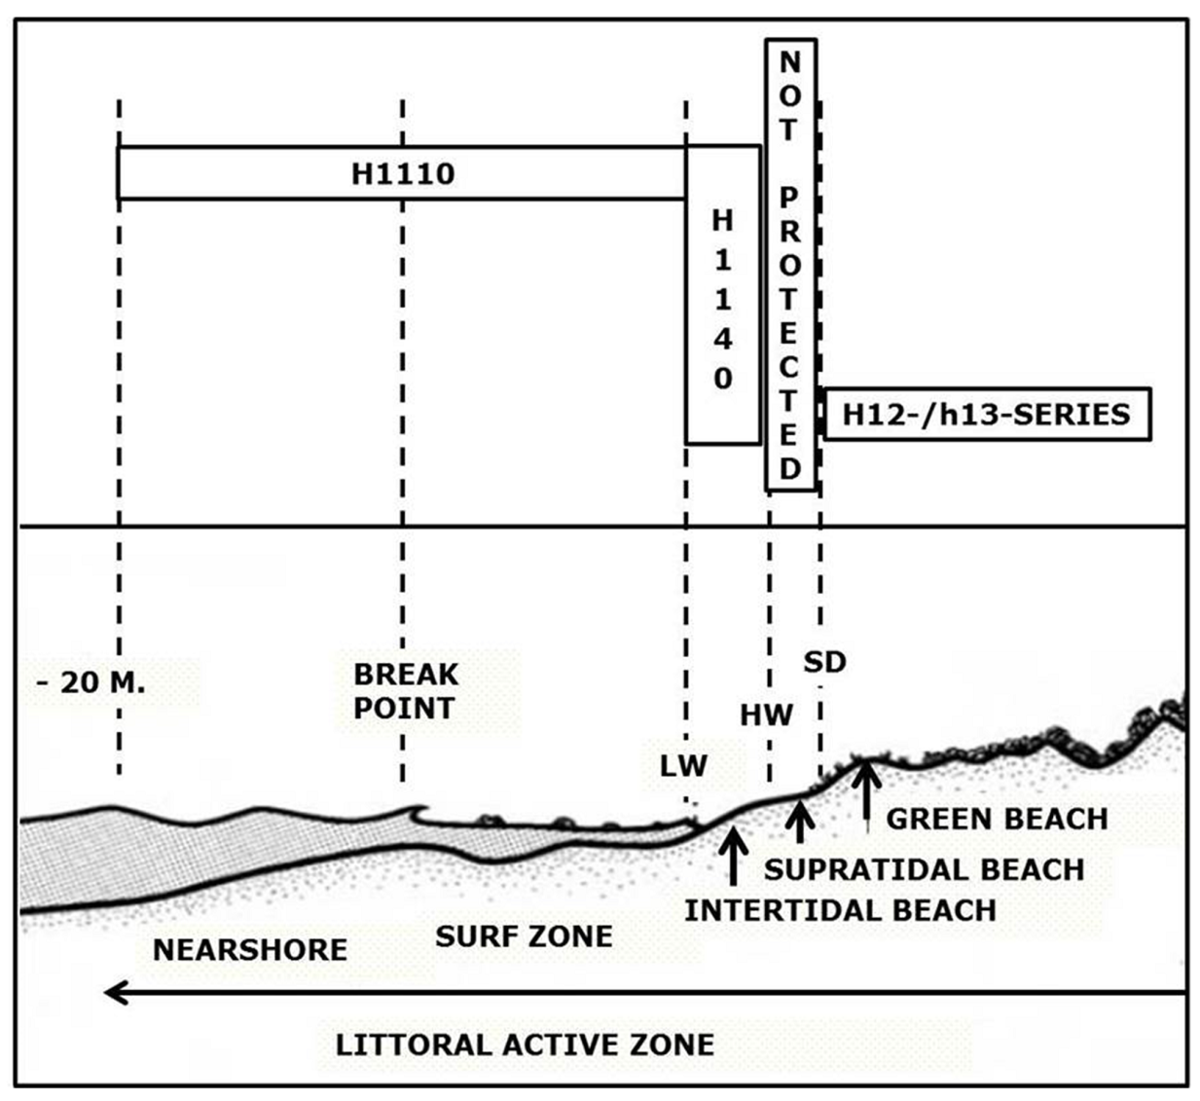 Figure 4. The littoral active zone (after McLachlan & Brown, 2006) with Natura 2000 habitat types. LW = low water linel HW = high water line; SD=storm driftline. The supratidal beach is not or only partly protected under the Birds and Habitats Directive.